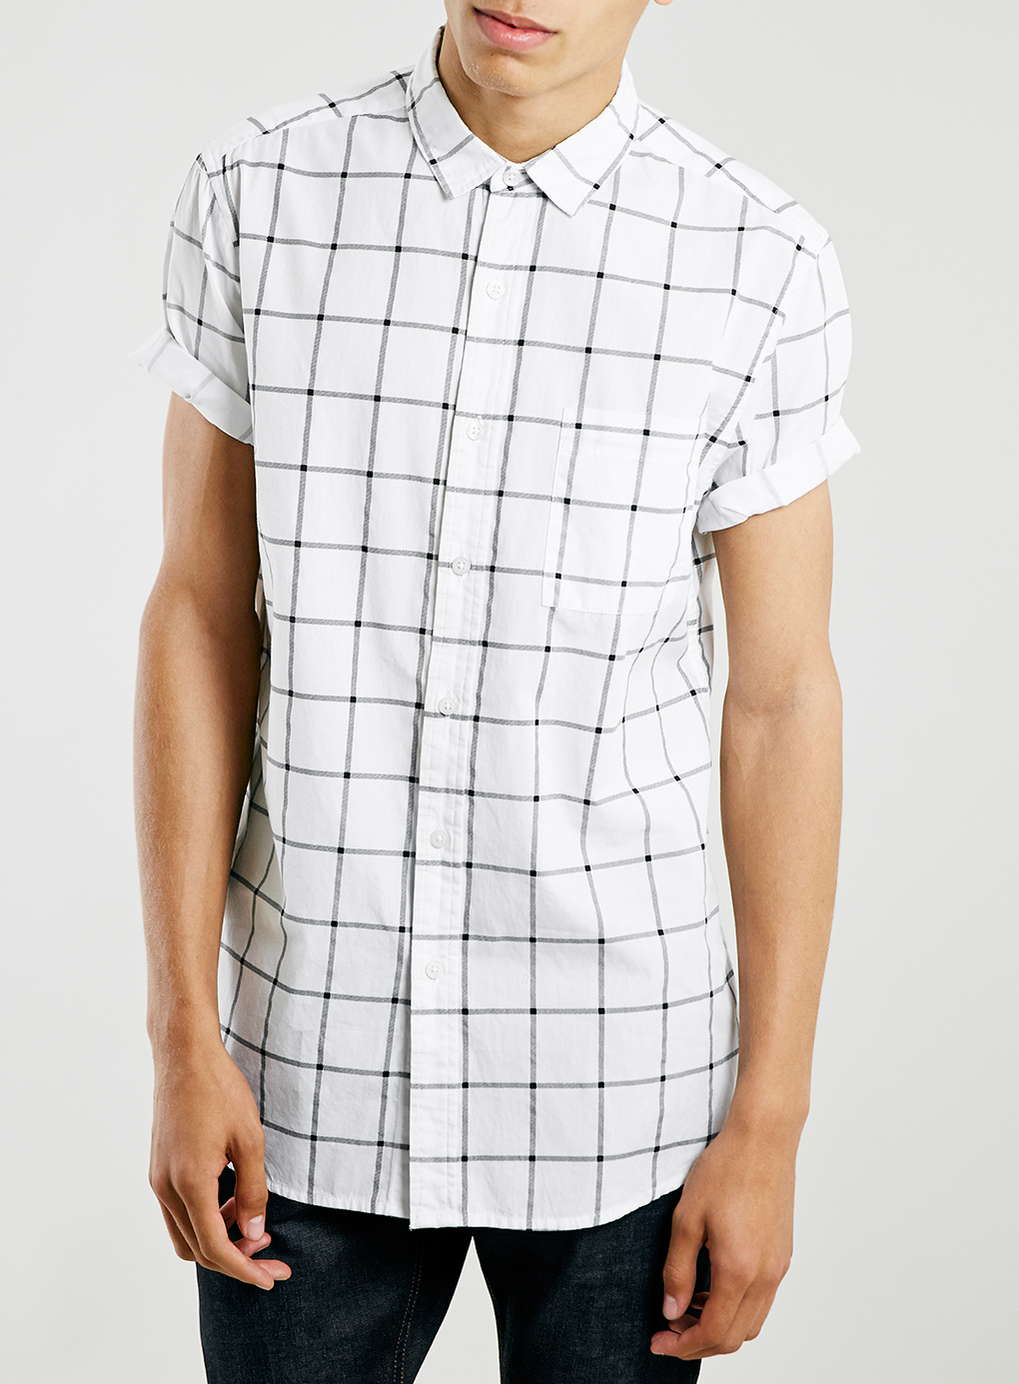 TopMan's White Mono Grid Short-Sleeve Shirt